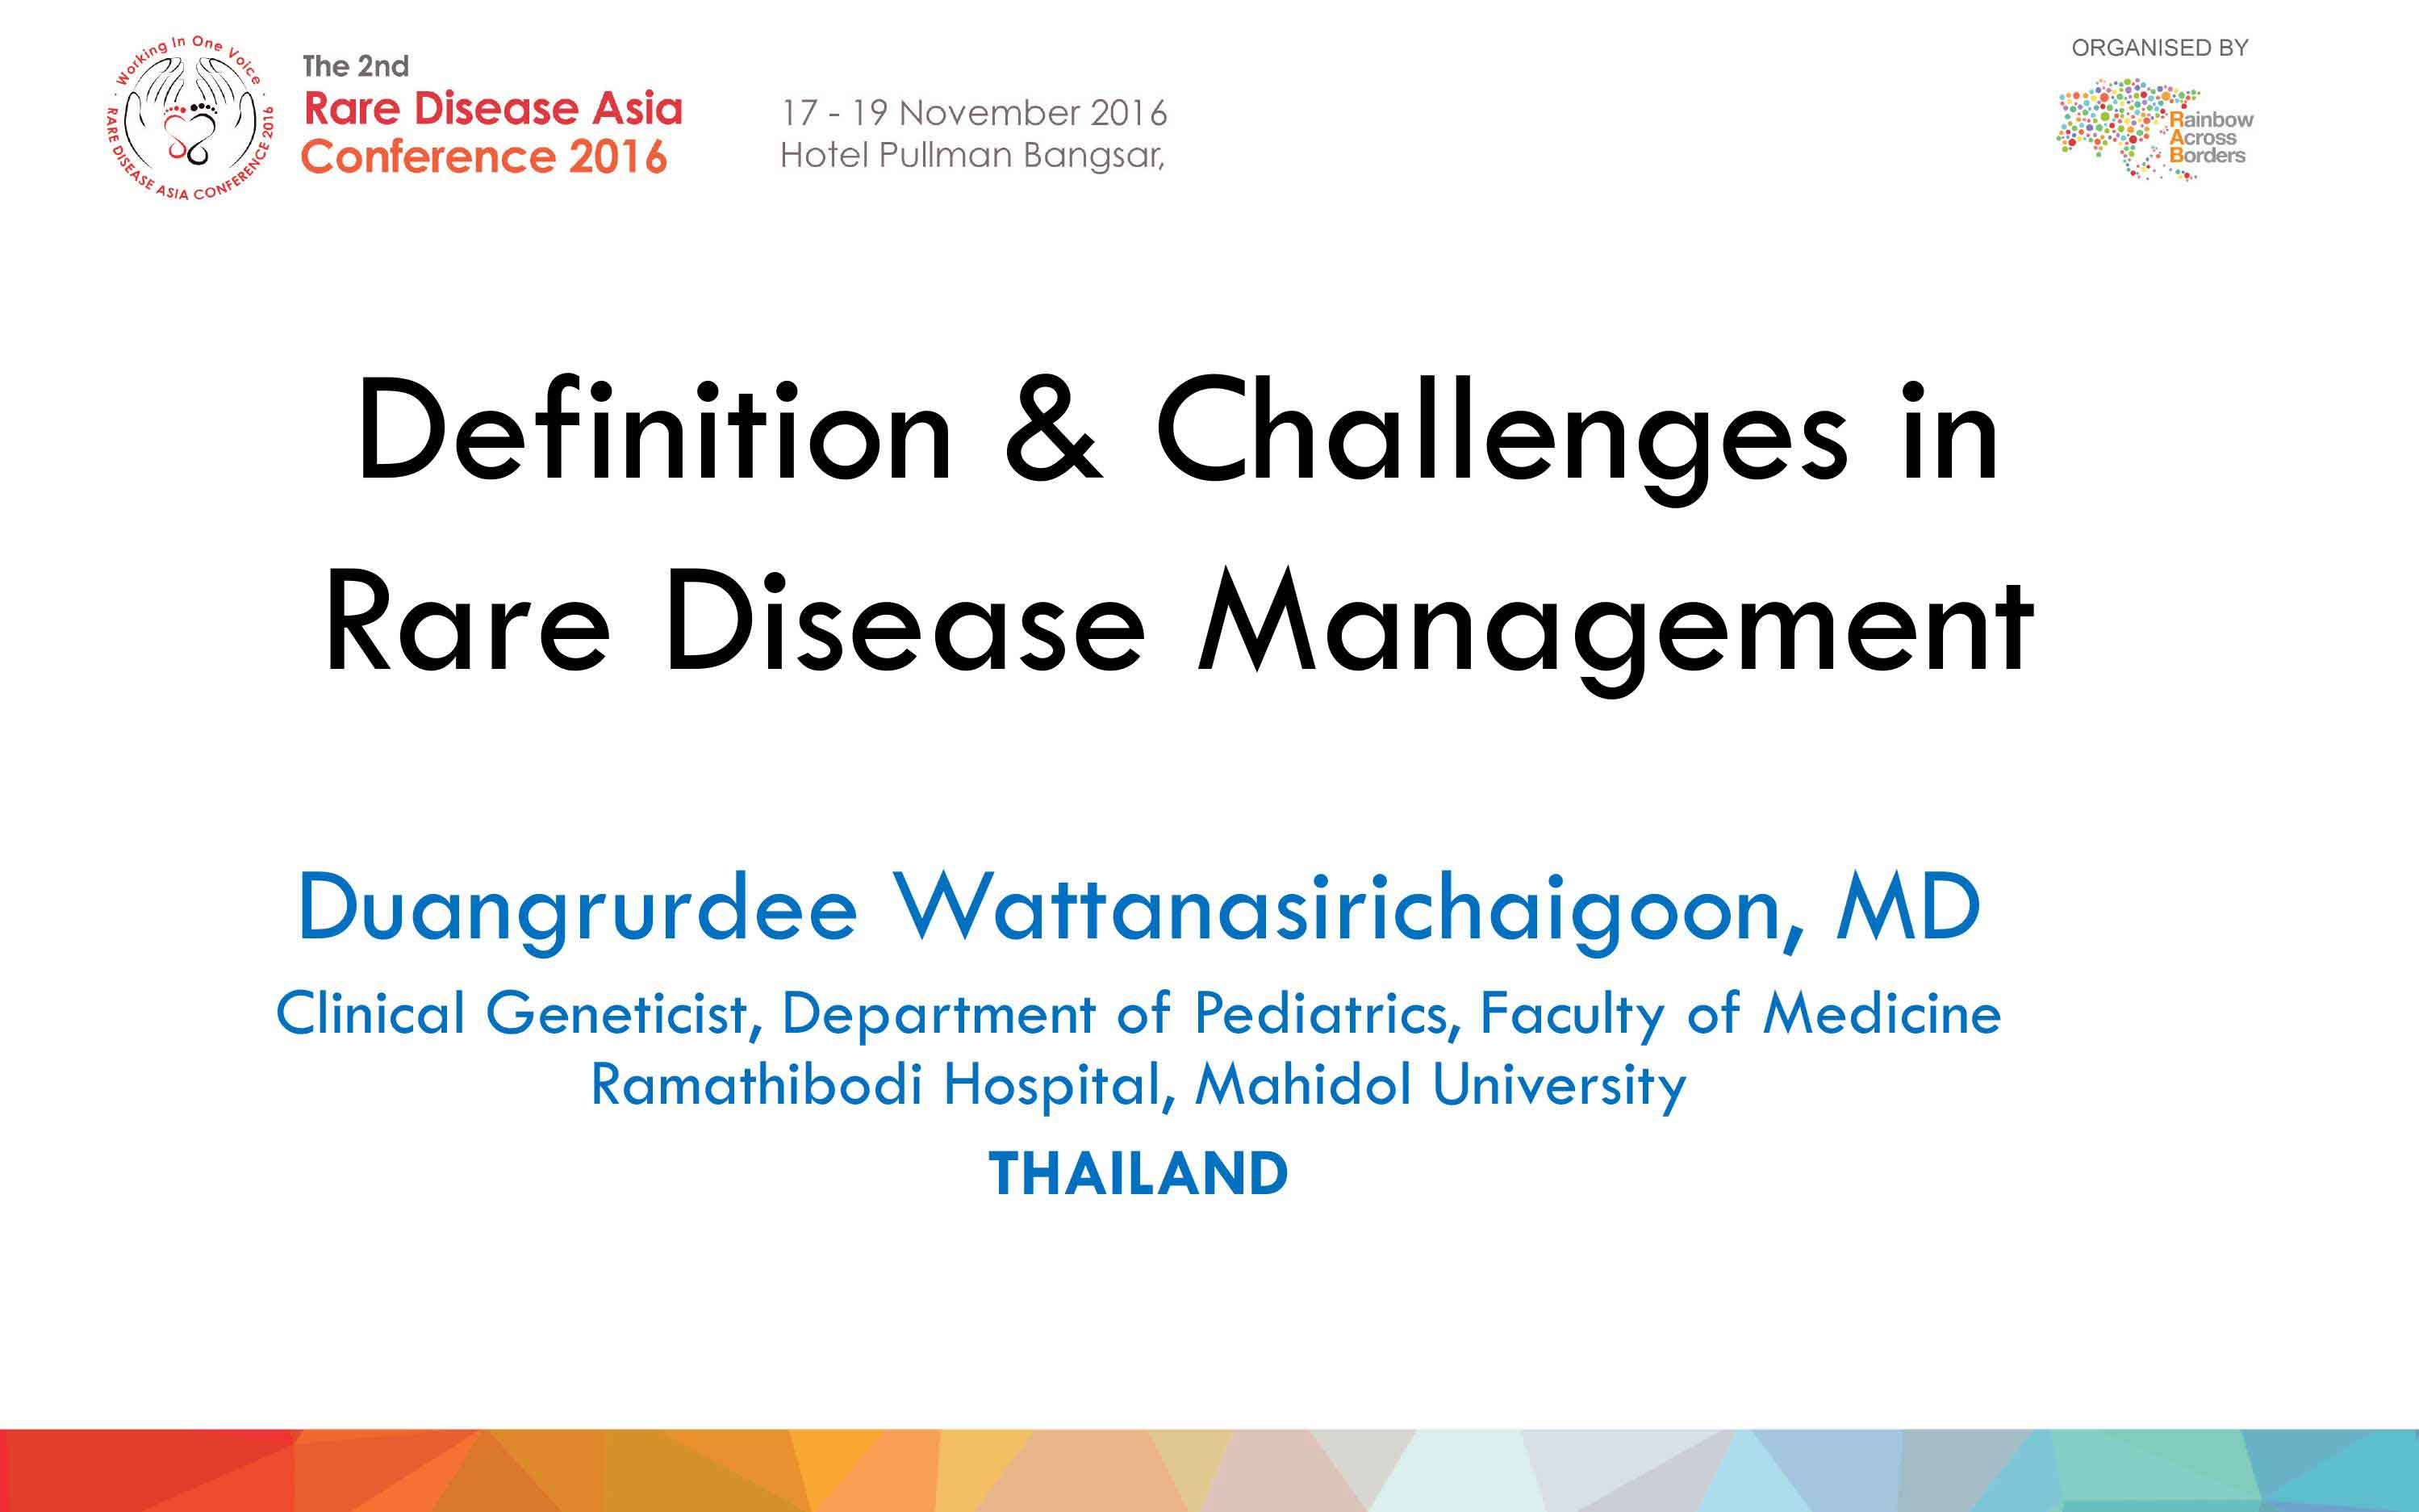 Medical Panel-Prof Duangrurdee Wattanasirichaigoon - Thailand